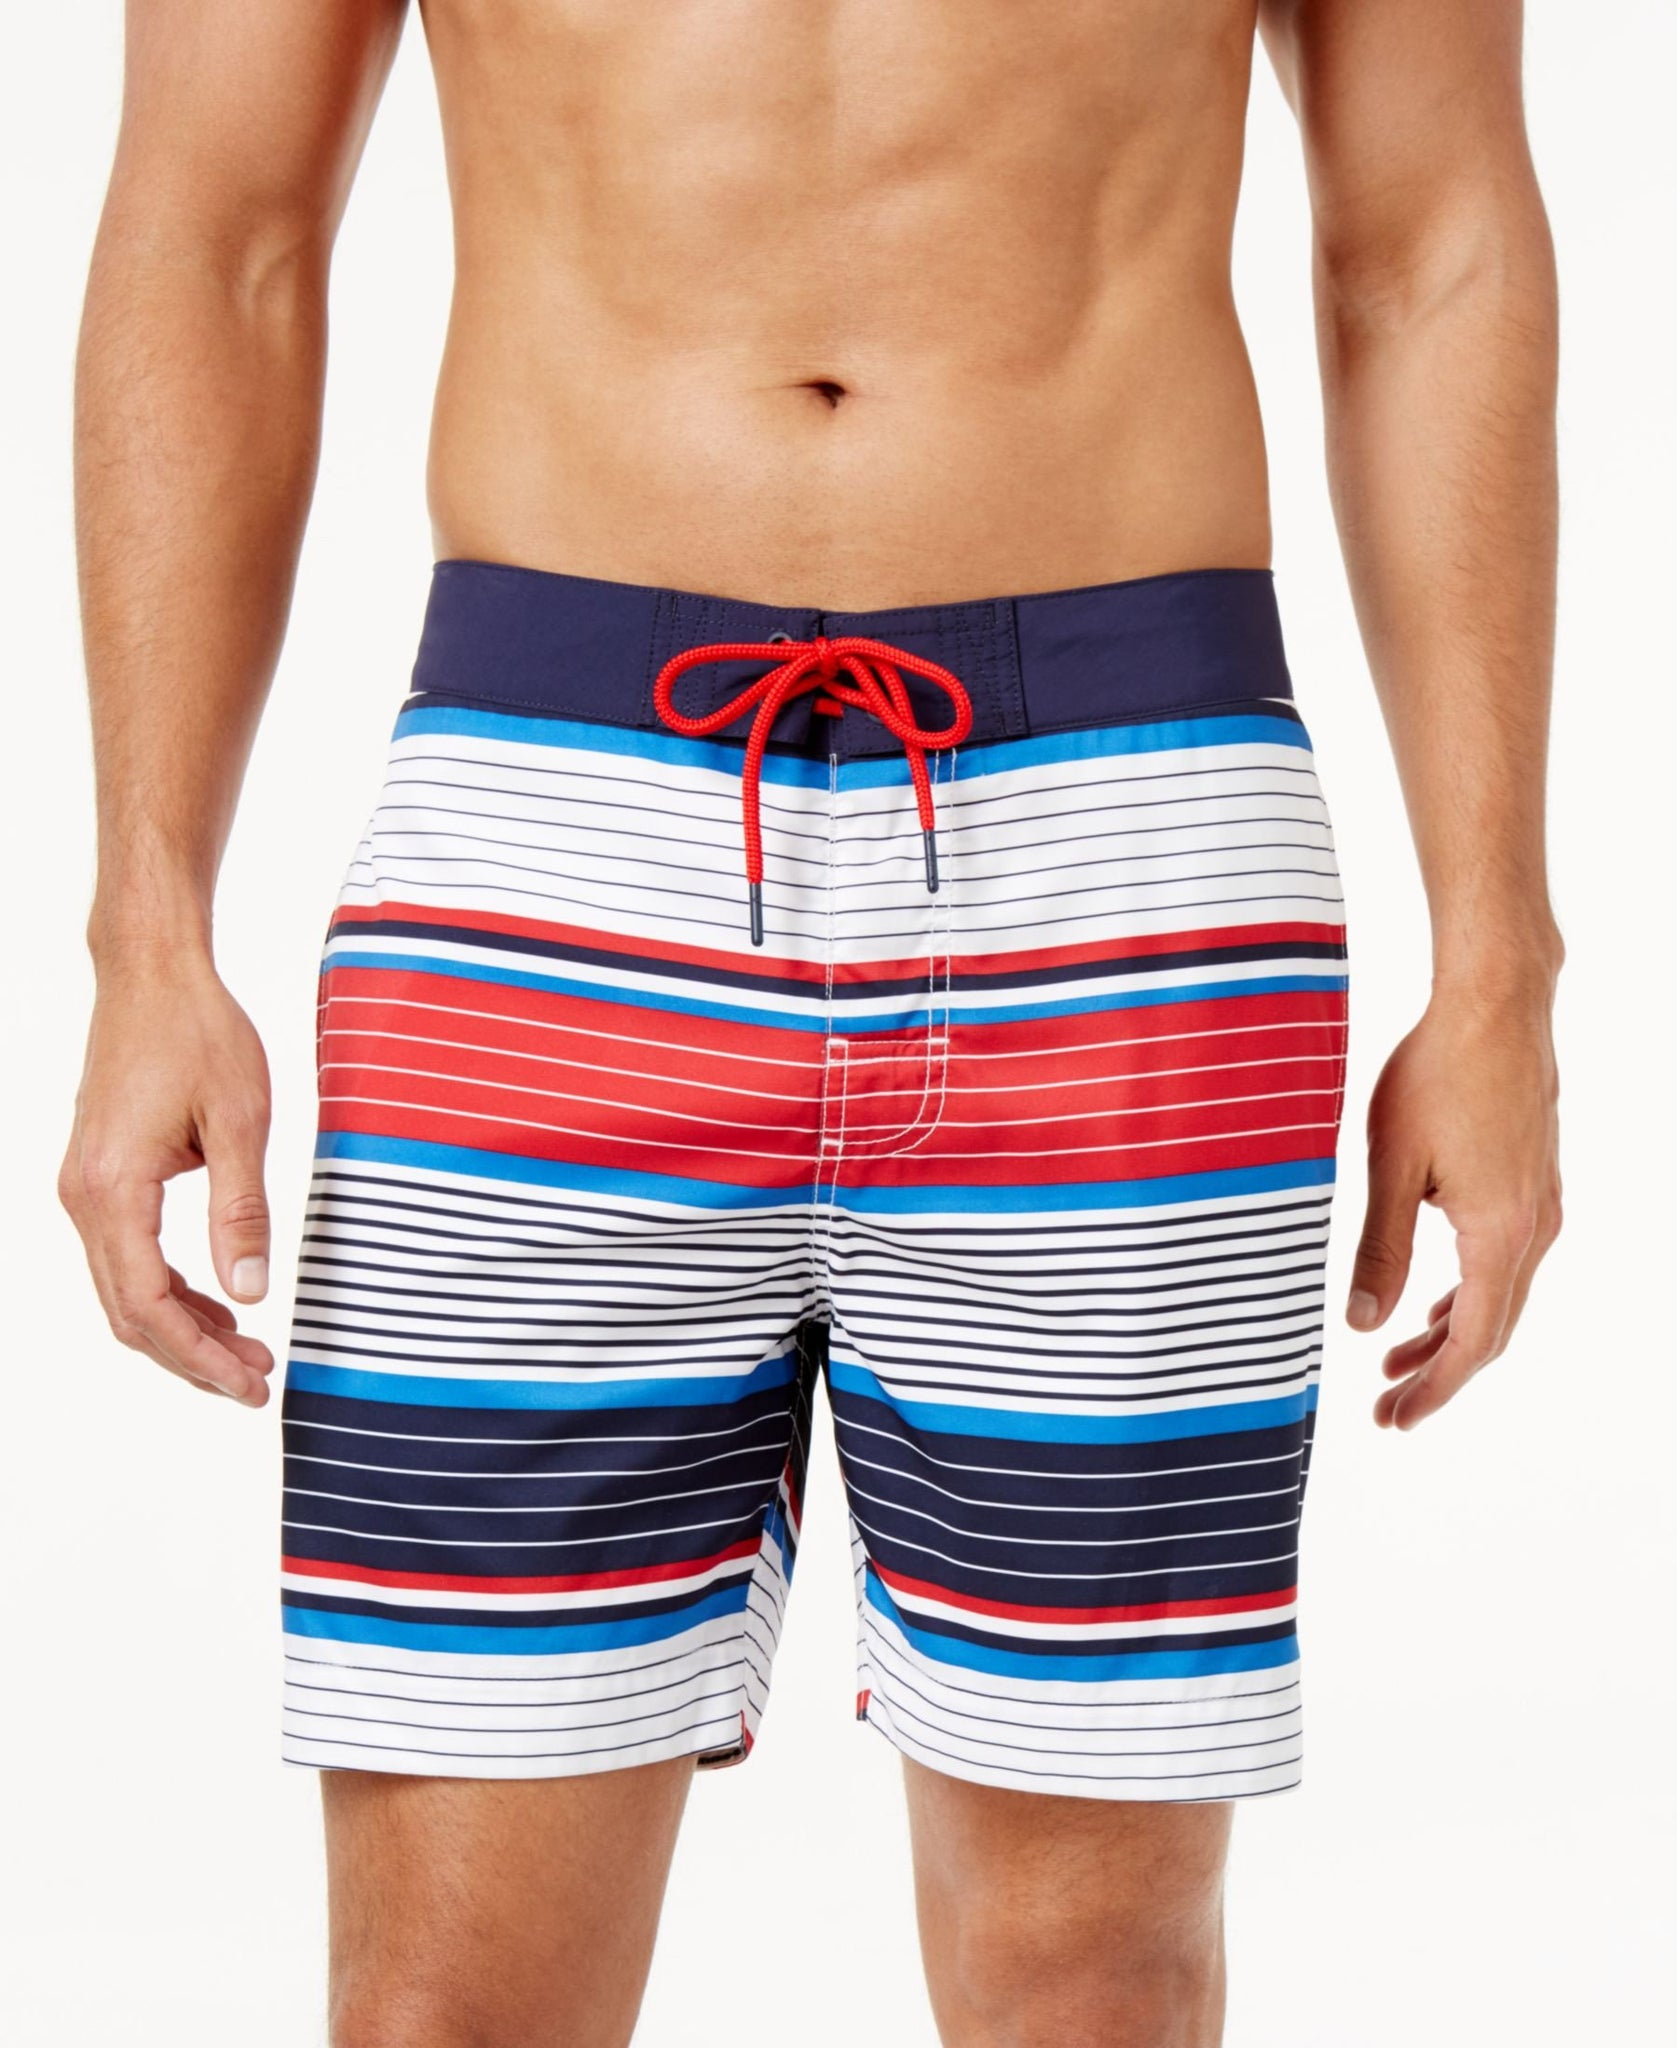 Tommy Hilfiger Men's Rhapsody Striped Board Shorts